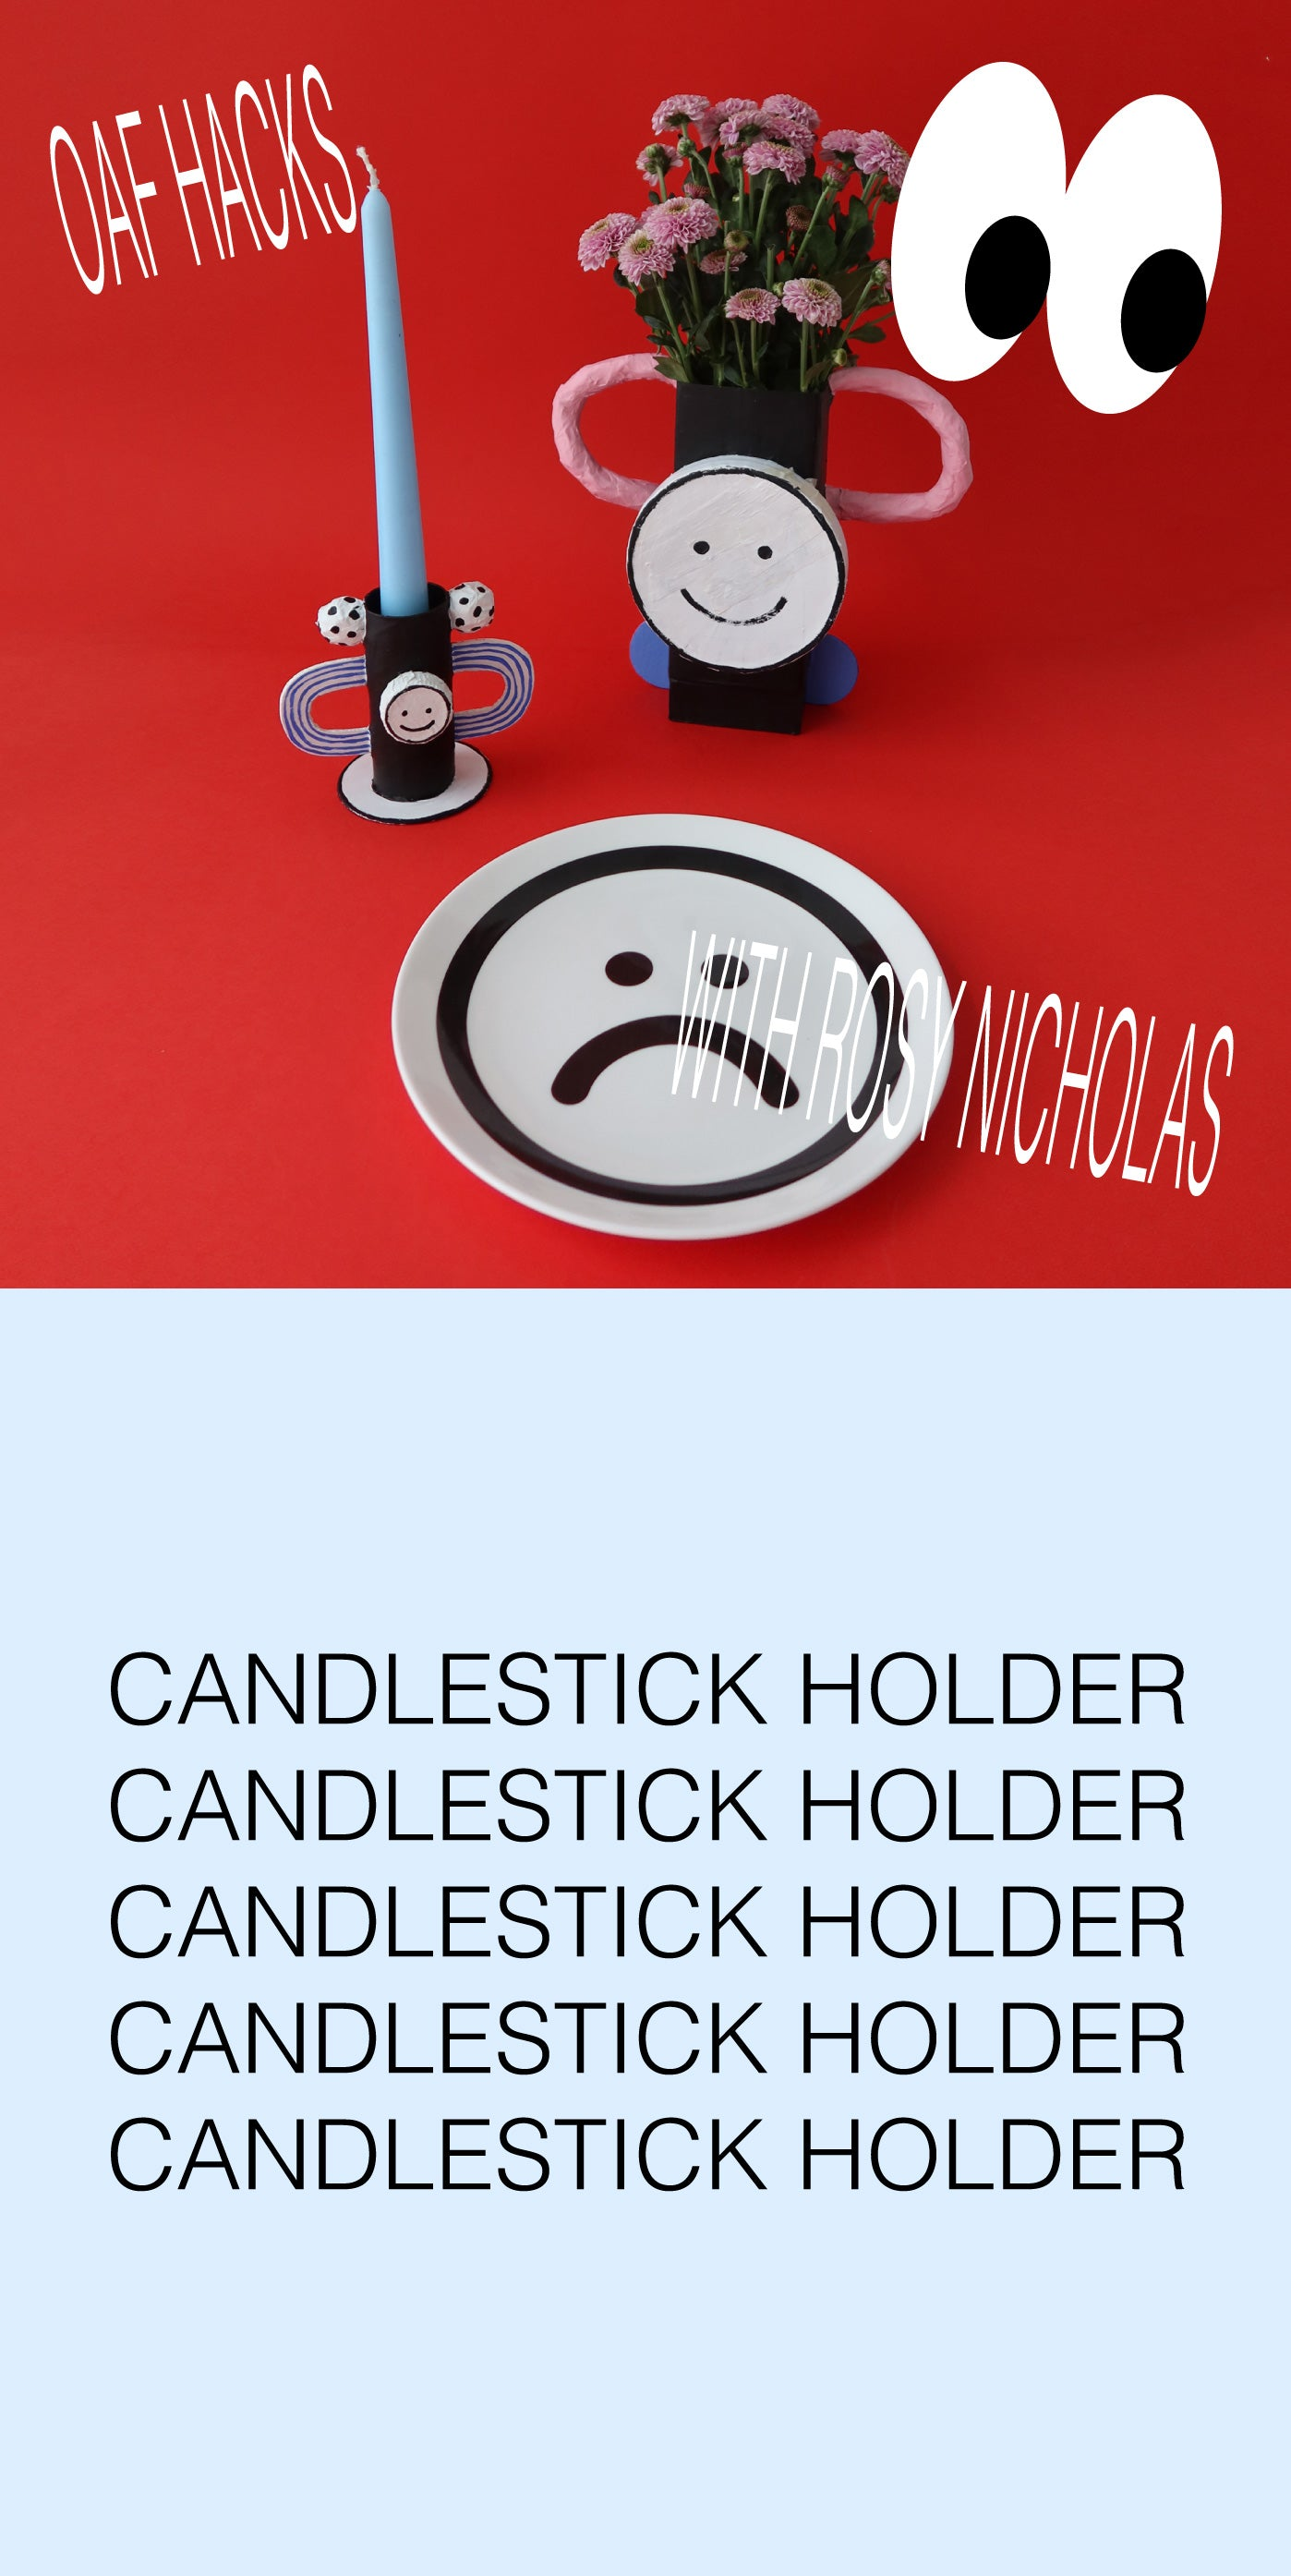 Oaf Hacks: Candlestick Holder with Rosy Nicholas